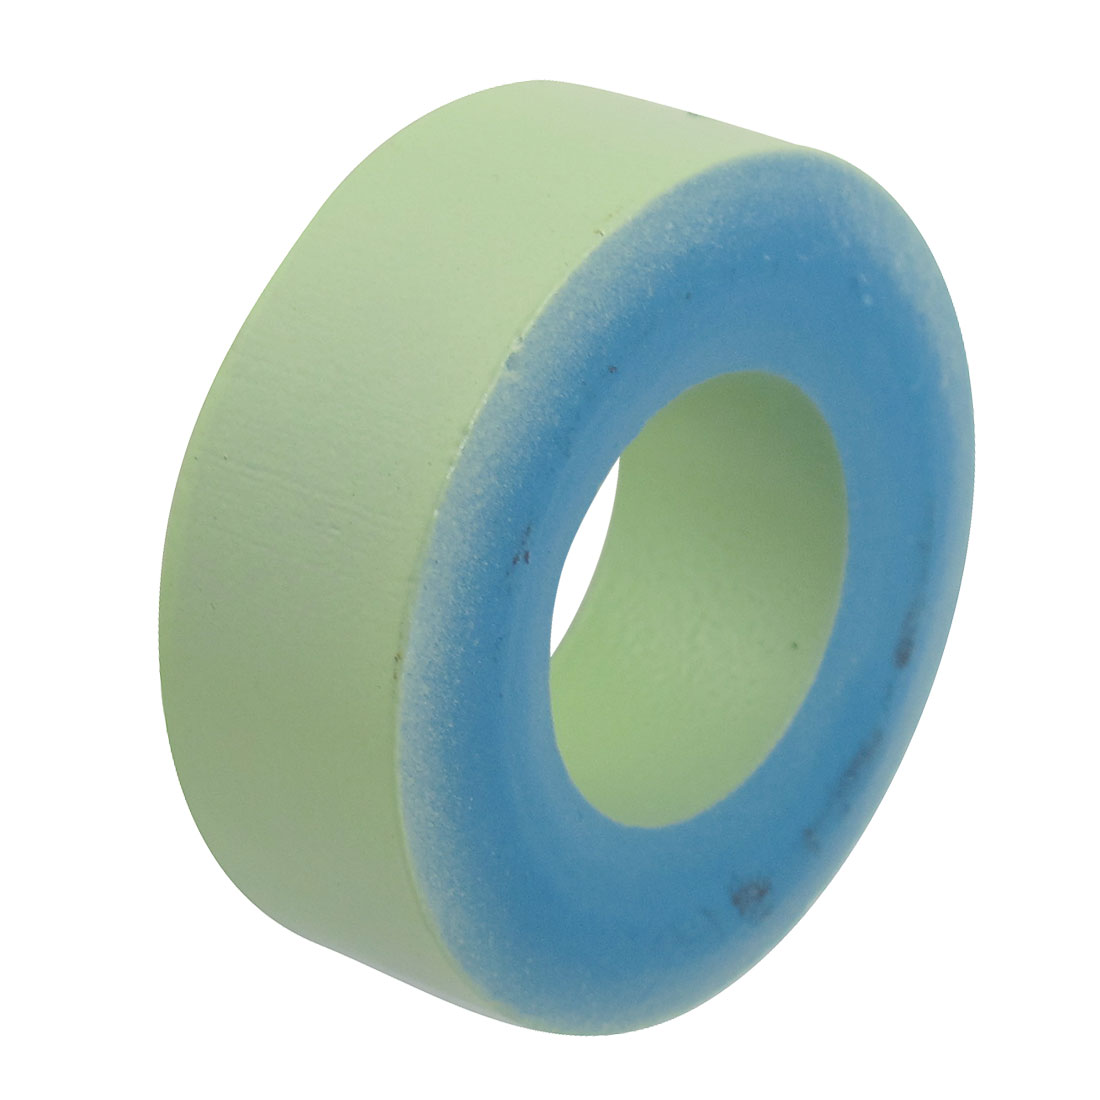 47mm x 24mm x 18mm Power Inductor Ferrite Ring Iron Toroidal Light Green Blue